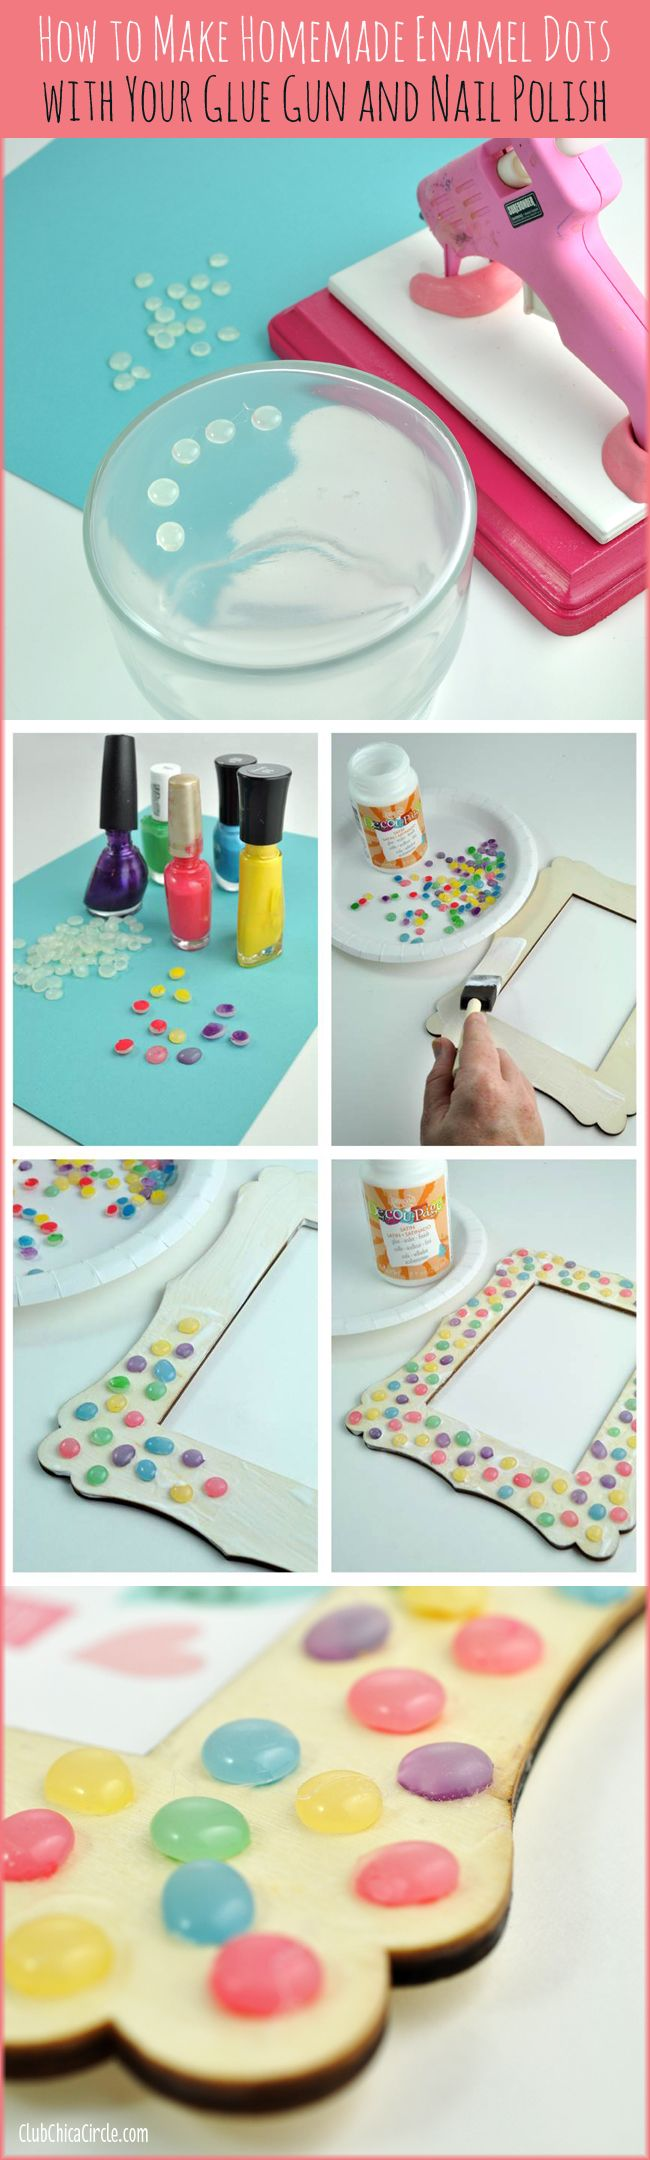 How to Make Homemade Enamel Dots with your Glue Gun and Nail Polish